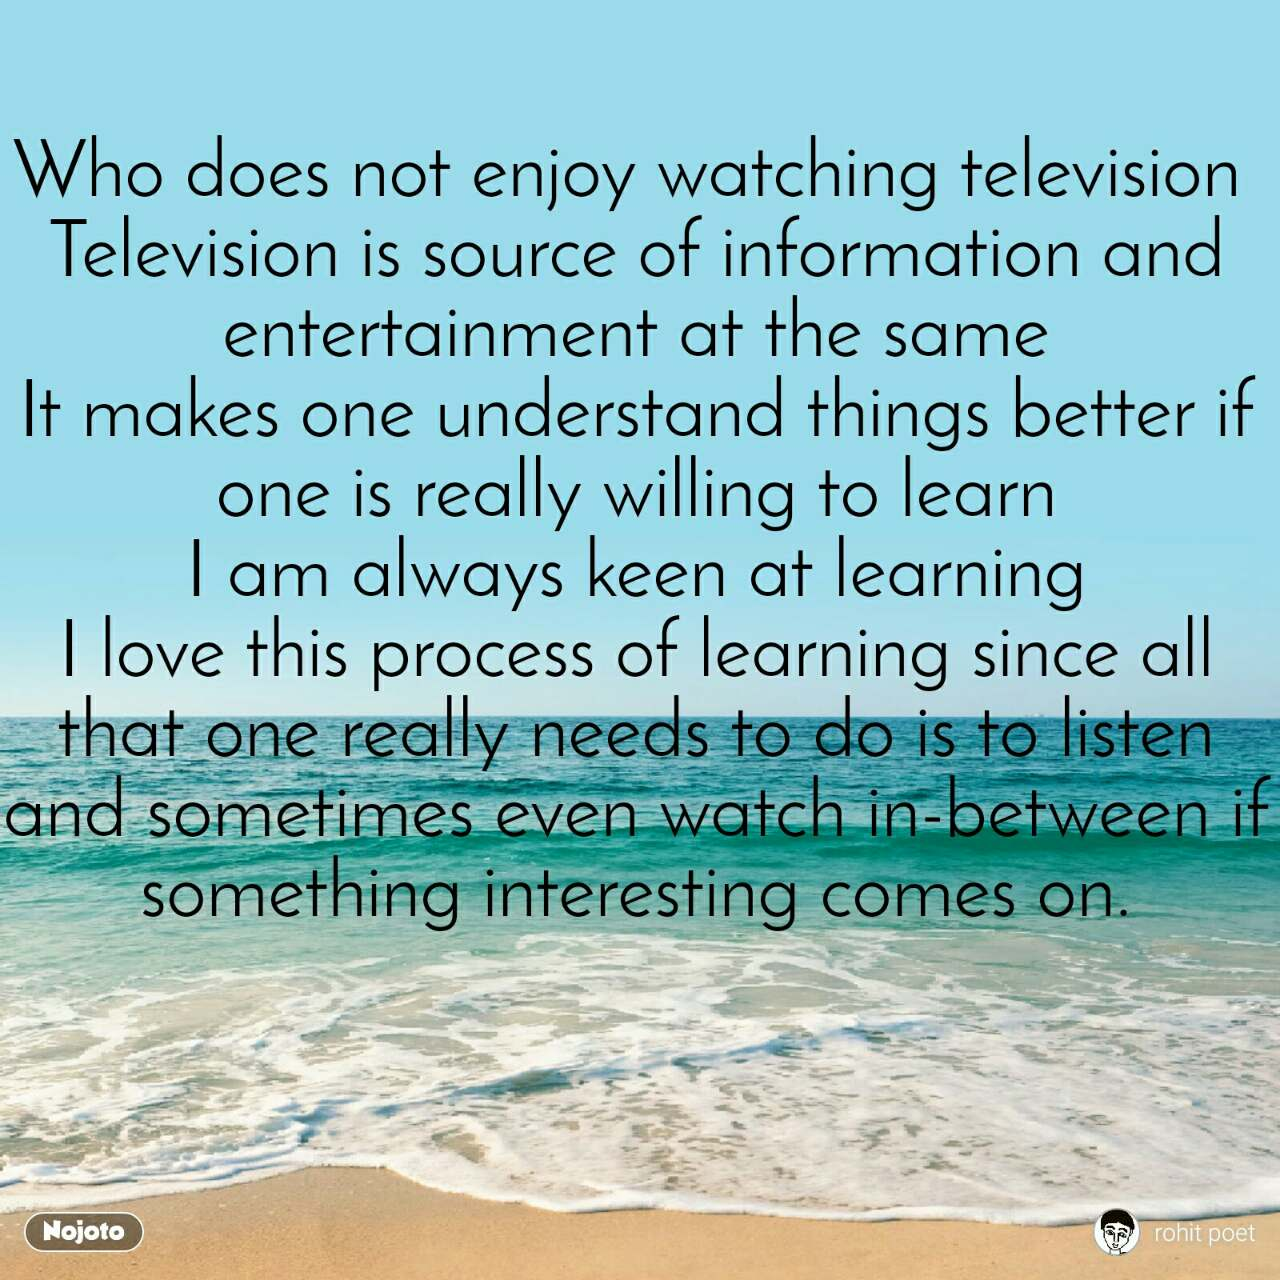 Who does not enjoy watching television  Television is source of information and entertainment at the same It makes one understand things better if one is really willing to learn I am always keen at learning I love this process of learning since all that one really needs to do is to listen and sometimes even watch in-between if something interesting comes on.